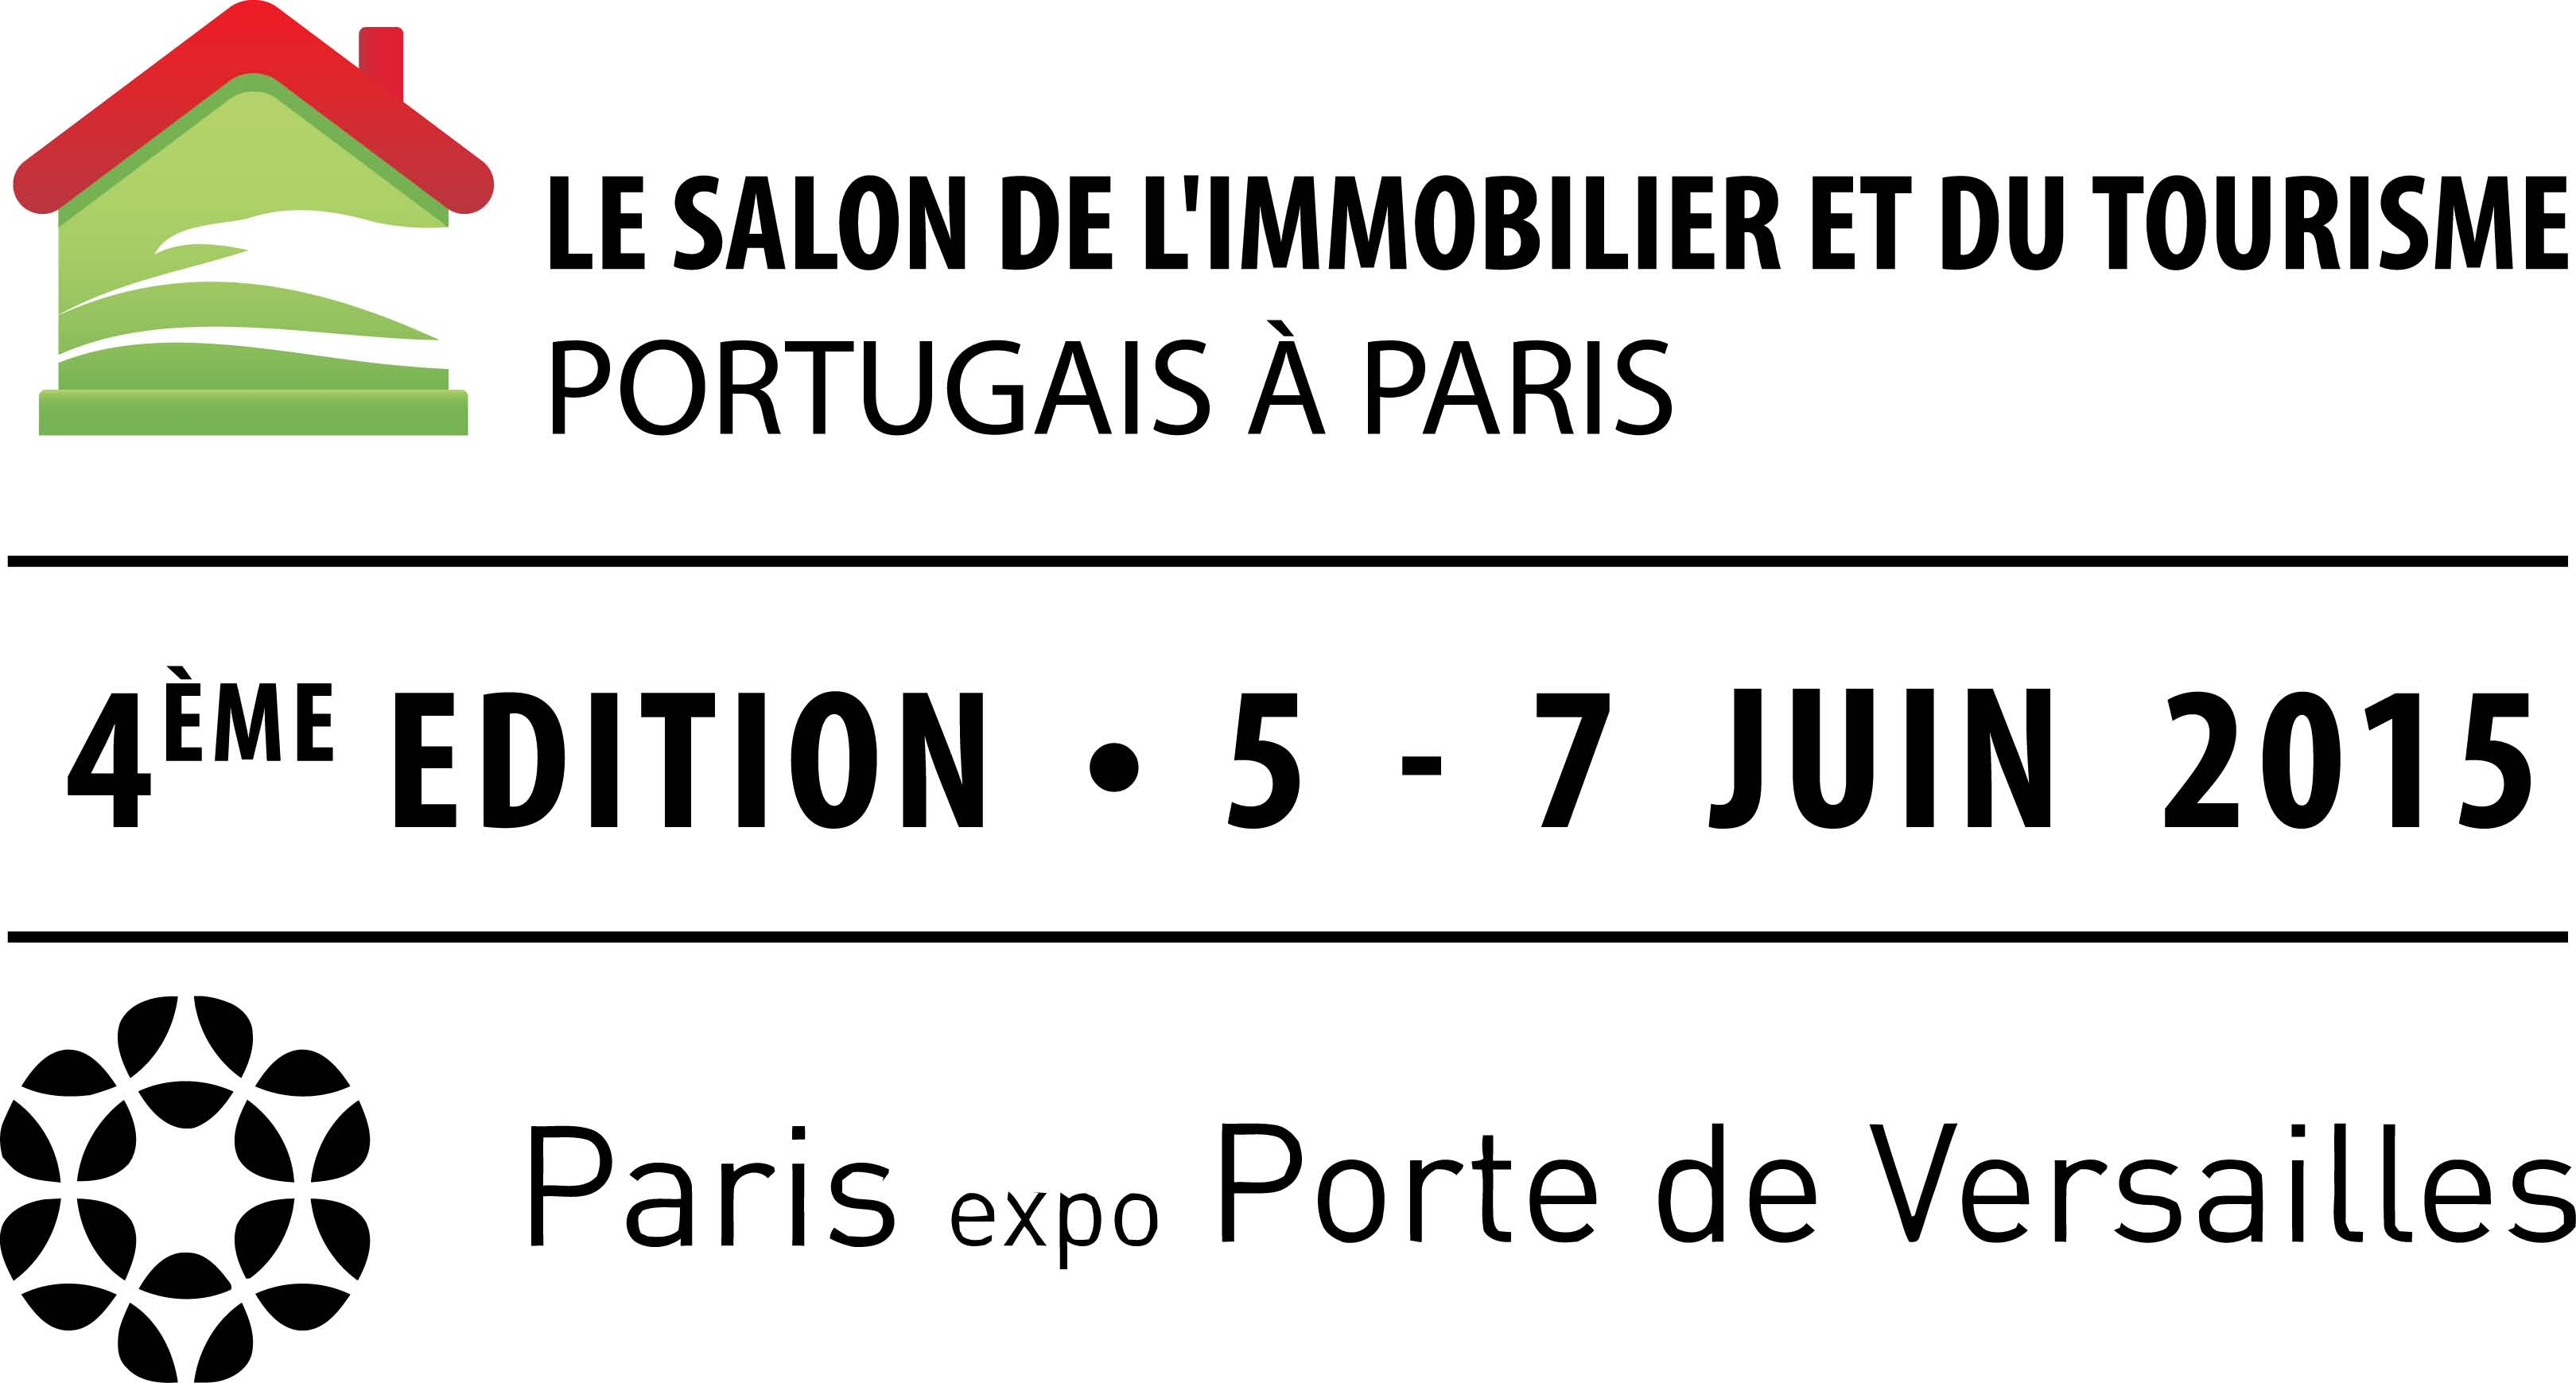 L 39 immobilier au portugal tient salon paris du 5 au 7 - Office du tourisme du portugal a paris ...